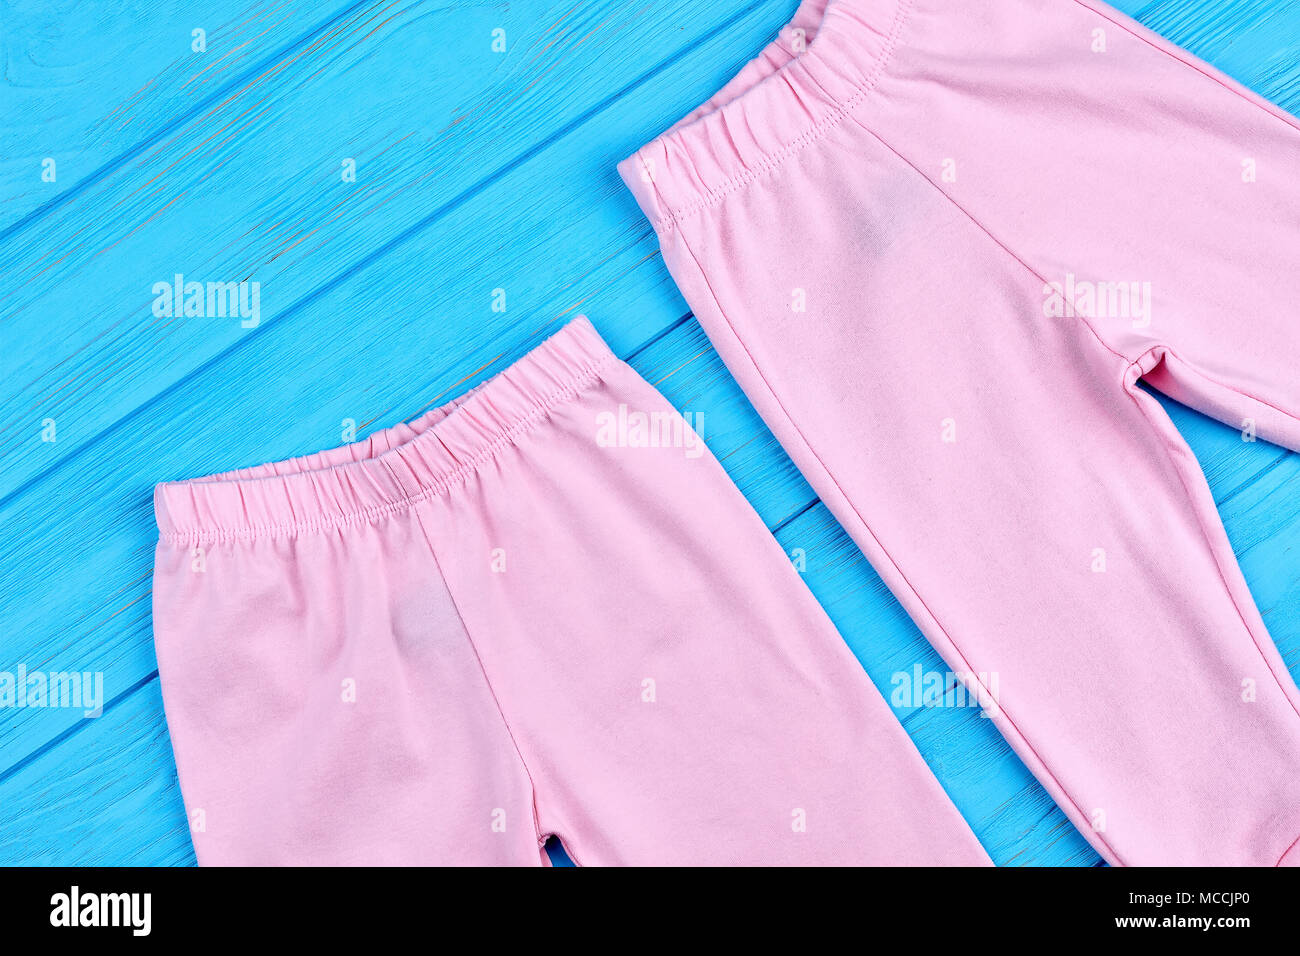 5b8034401 Brand Clothes Stock Photos   Brand Clothes Stock Images - Page 55 ...